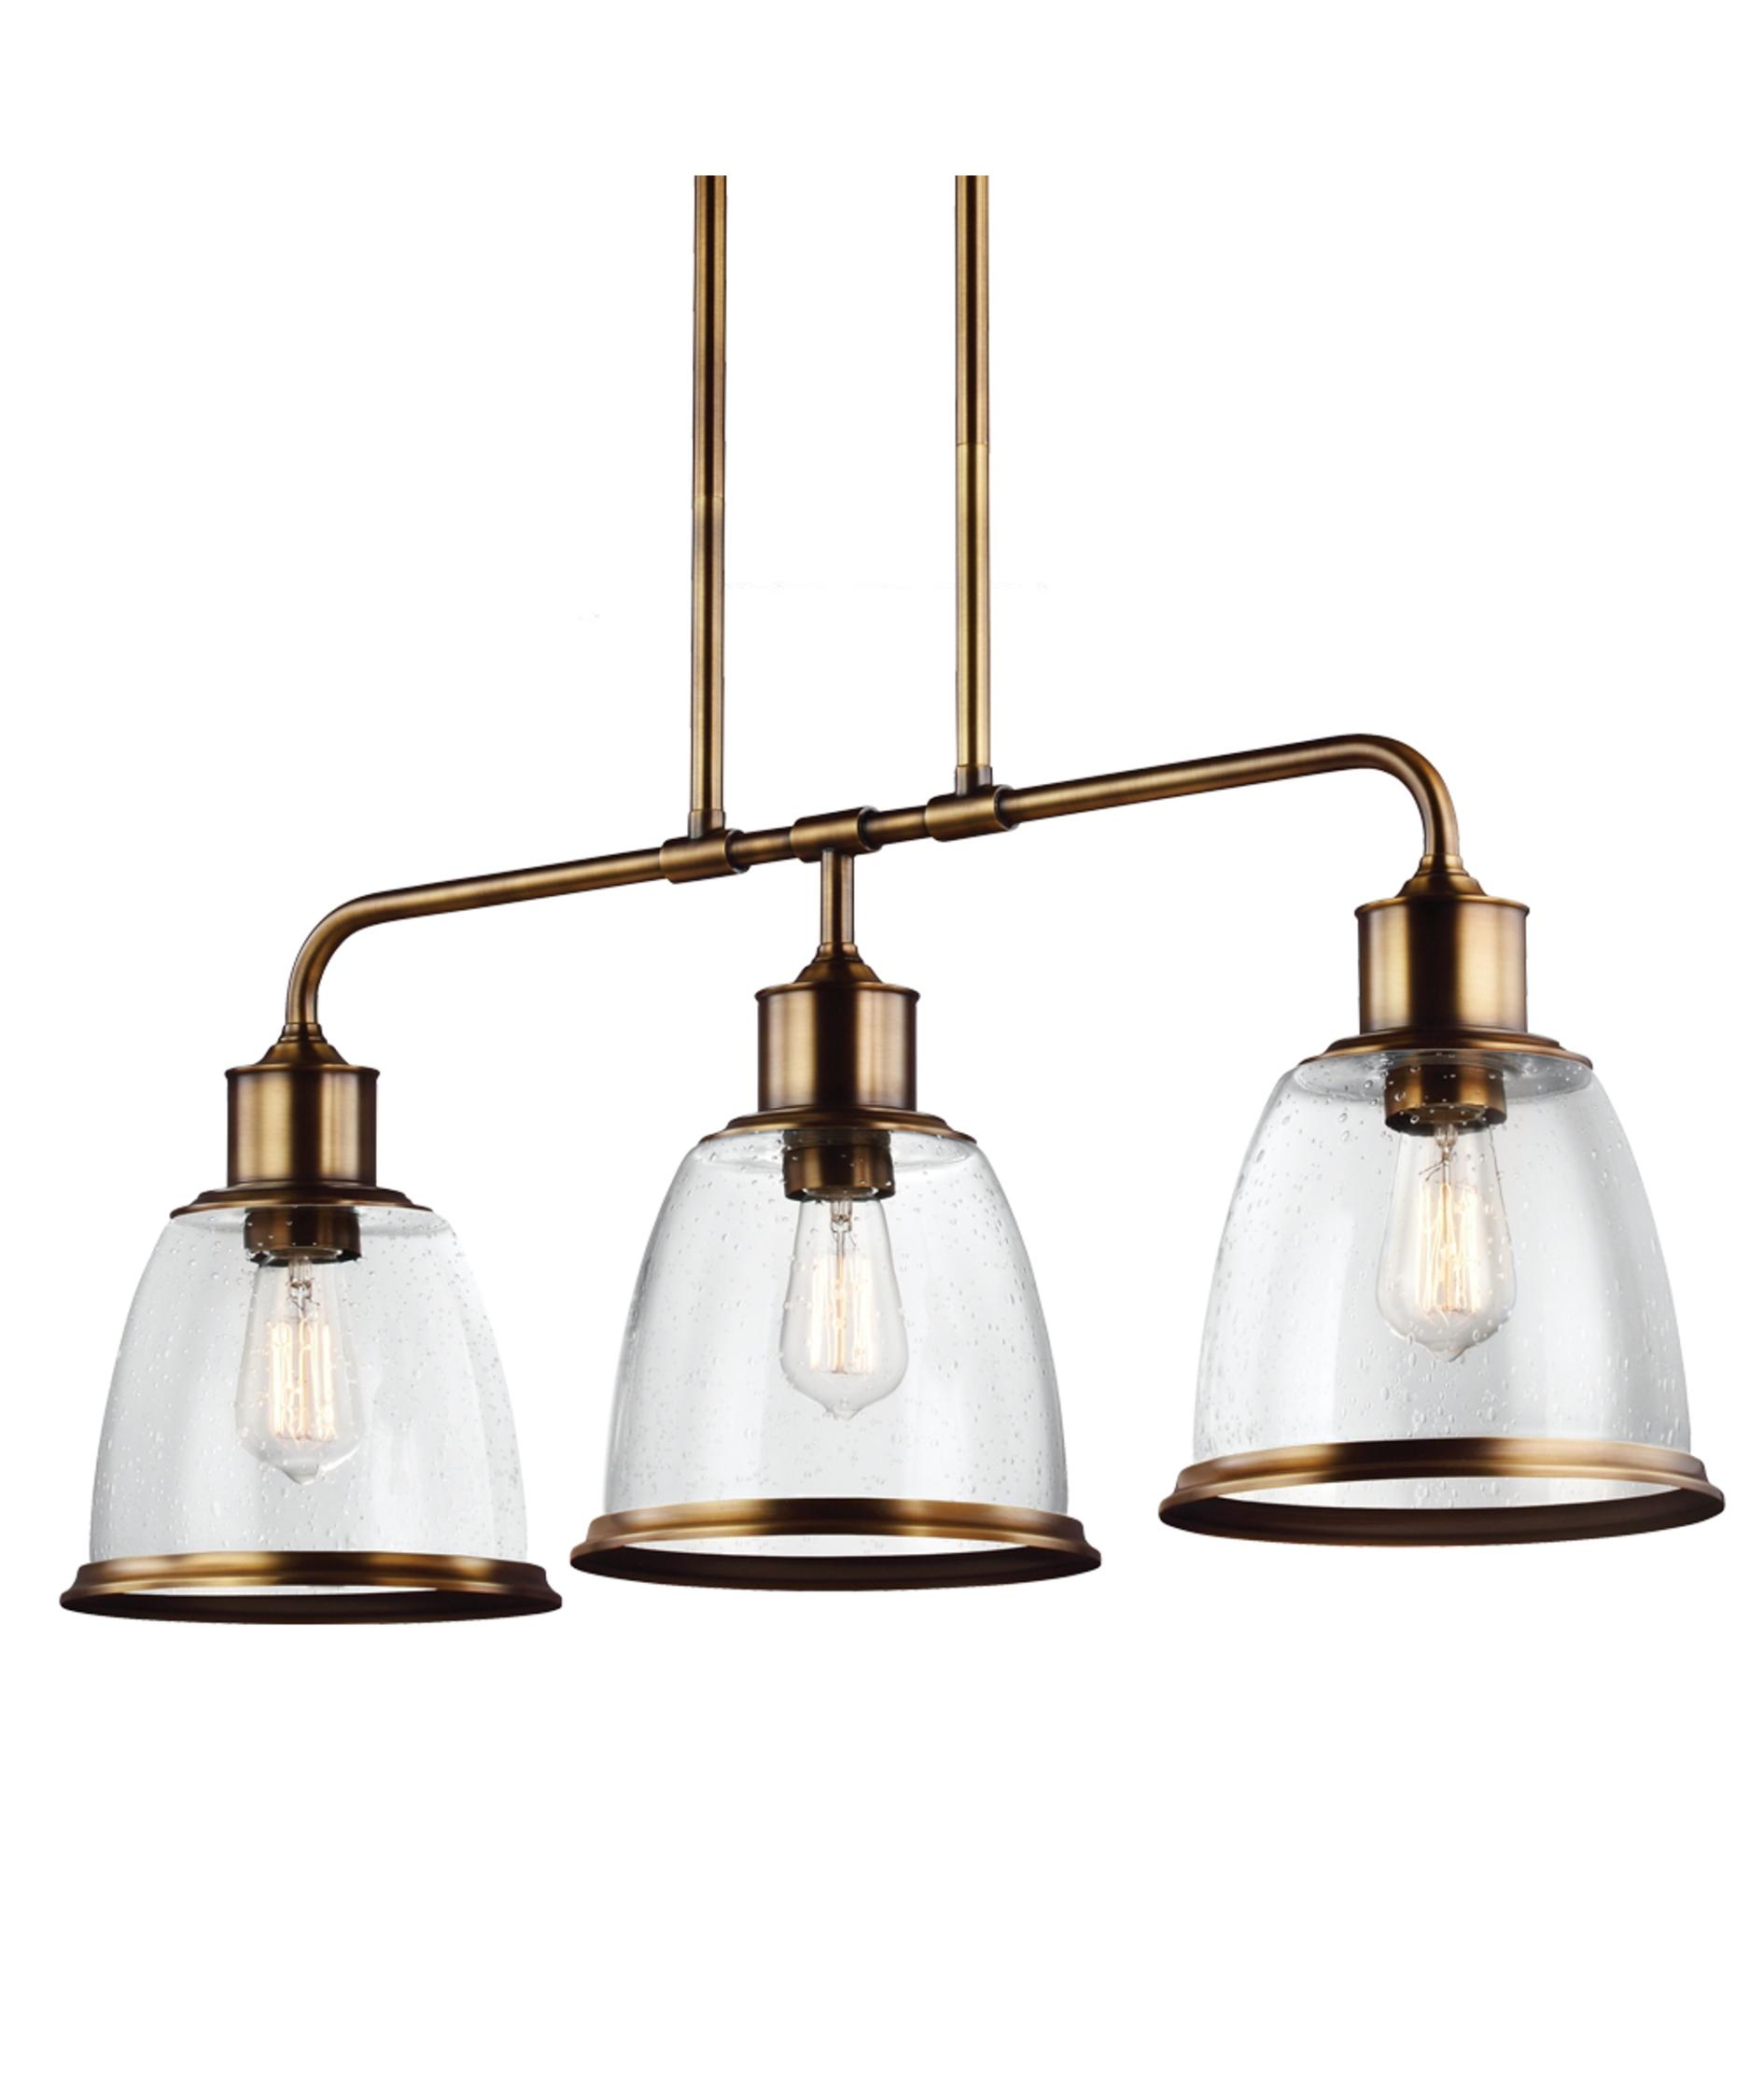 Murray Feiss F30193 Hobson 36 Inch Wide Island Light  Capitol